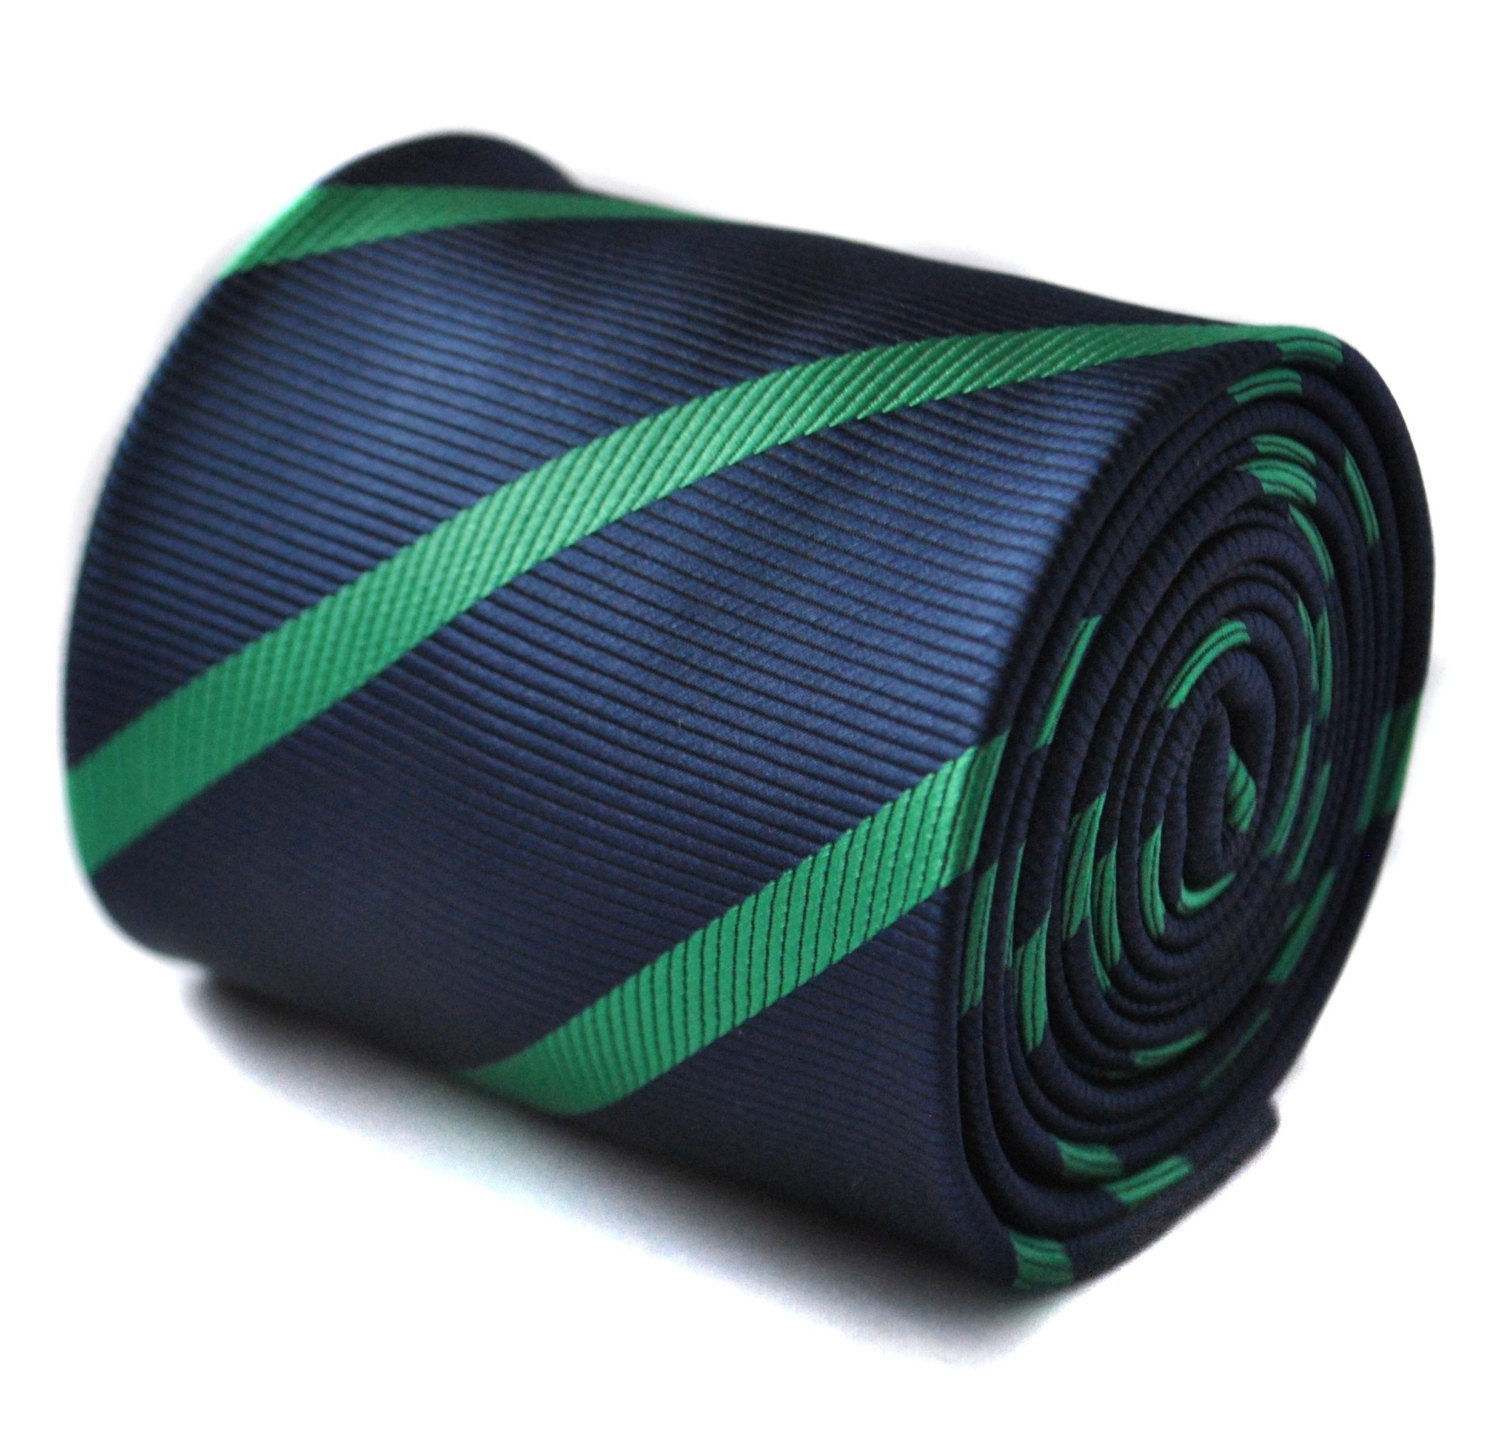 navy and dark green club striped tie with floral design to the rear by Frederick